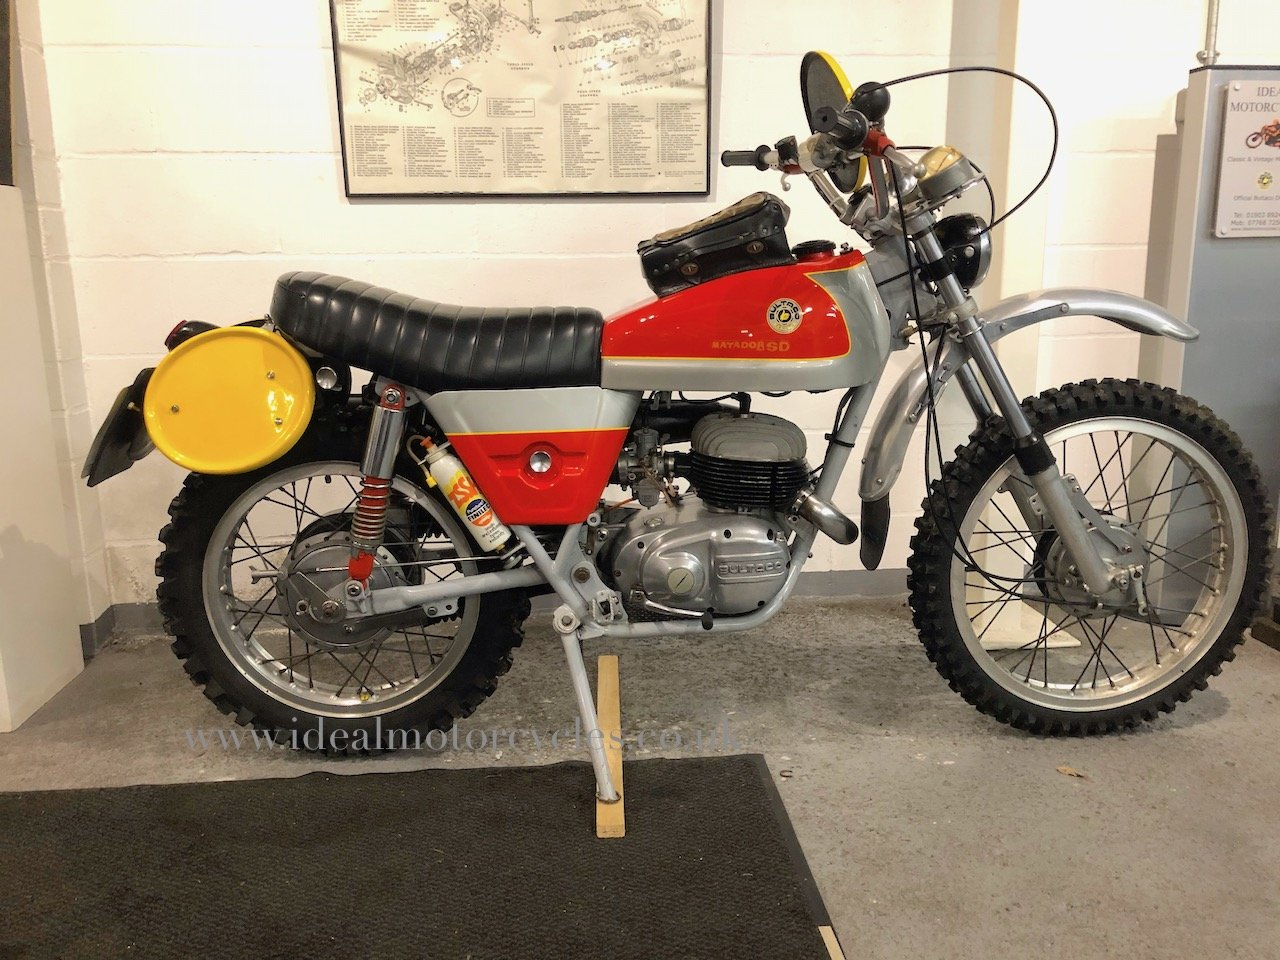 1973 Bultaco Matador Mk4 250cc Enduro Motorcycle For Sale (picture 1 of 6)